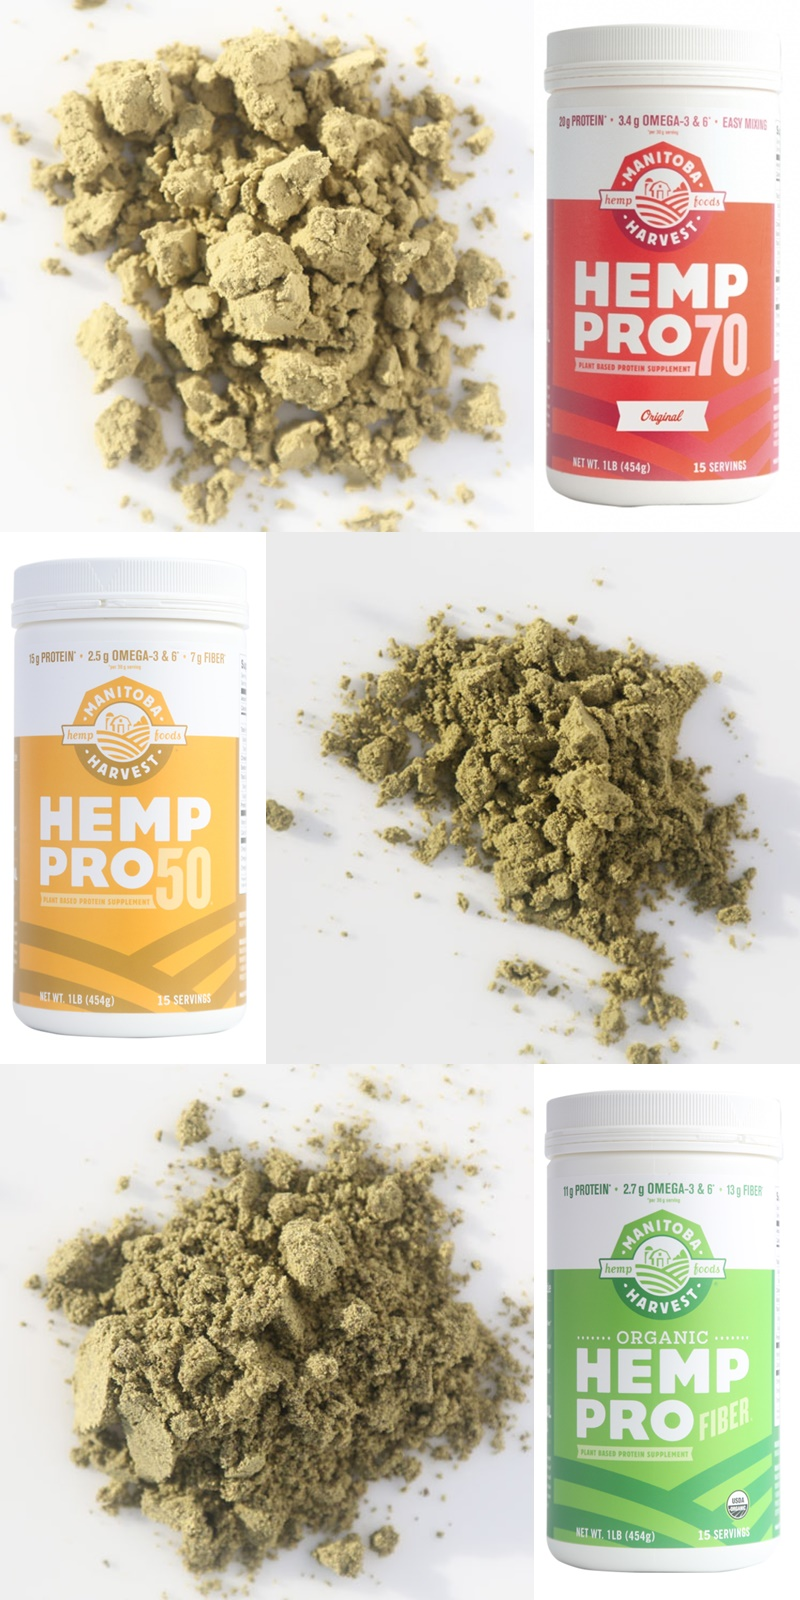 Manitoba Harvest Hemp Protein Powders (Review) - several varieties, all dairy-free and vegan, some organic and flavored